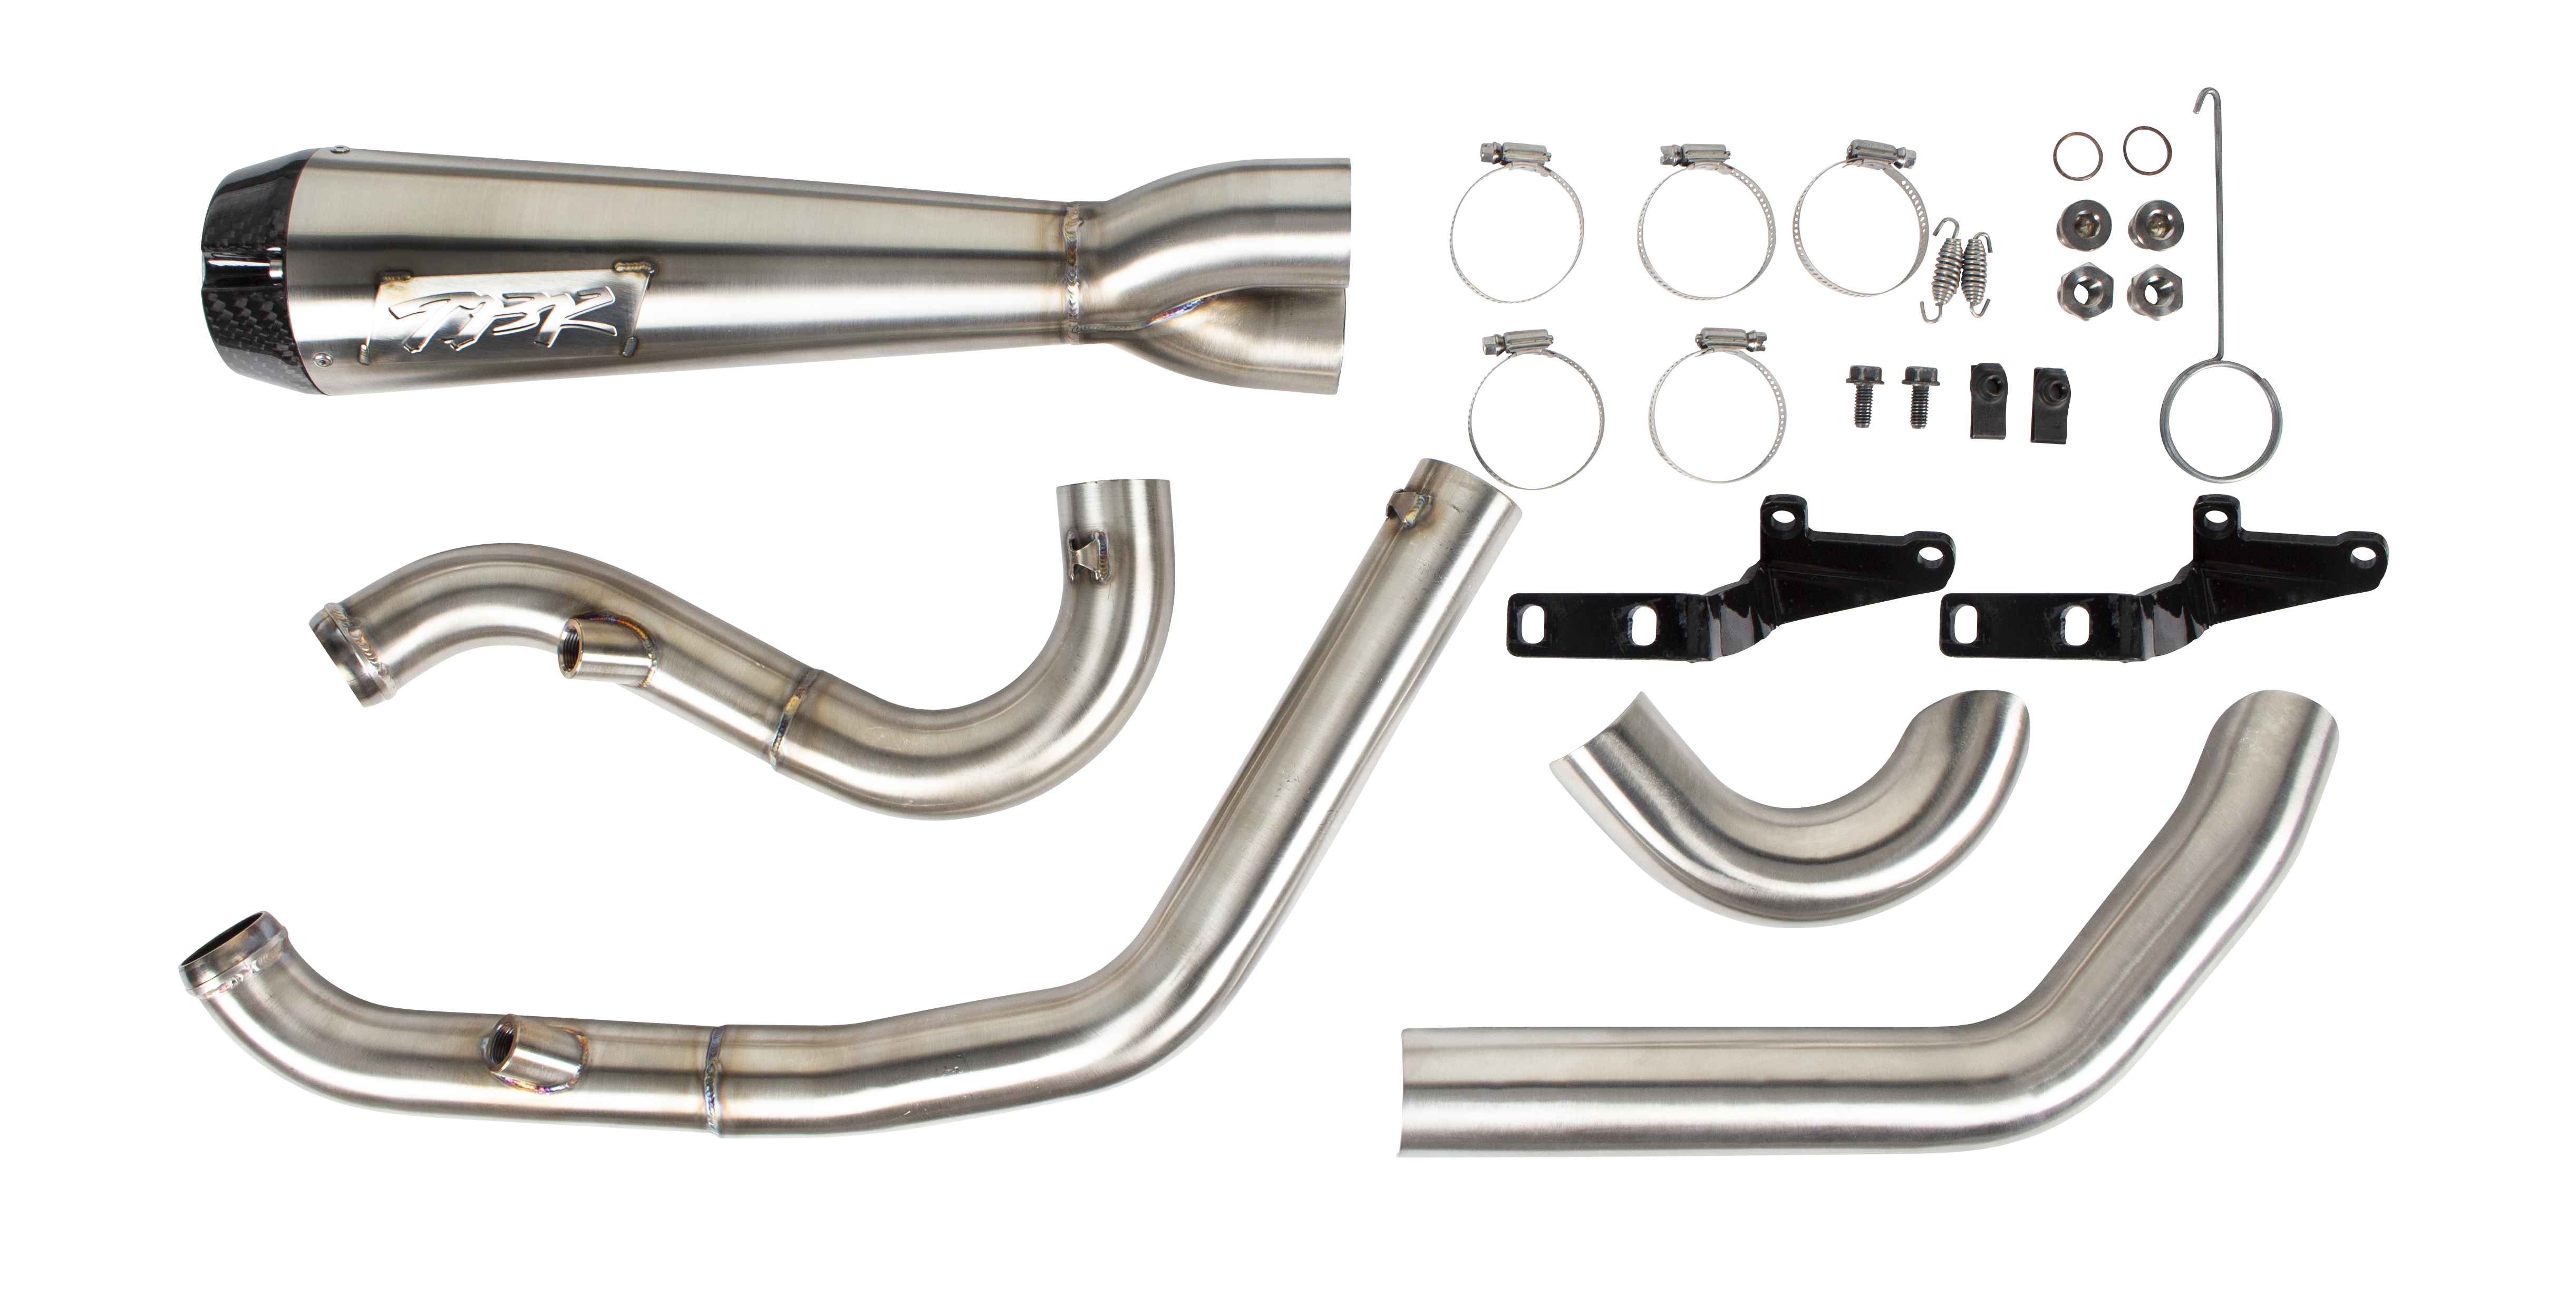 210225 2000-2017 Harley-Davidson Softail 2-1 Comp-S Exhaust System (1)